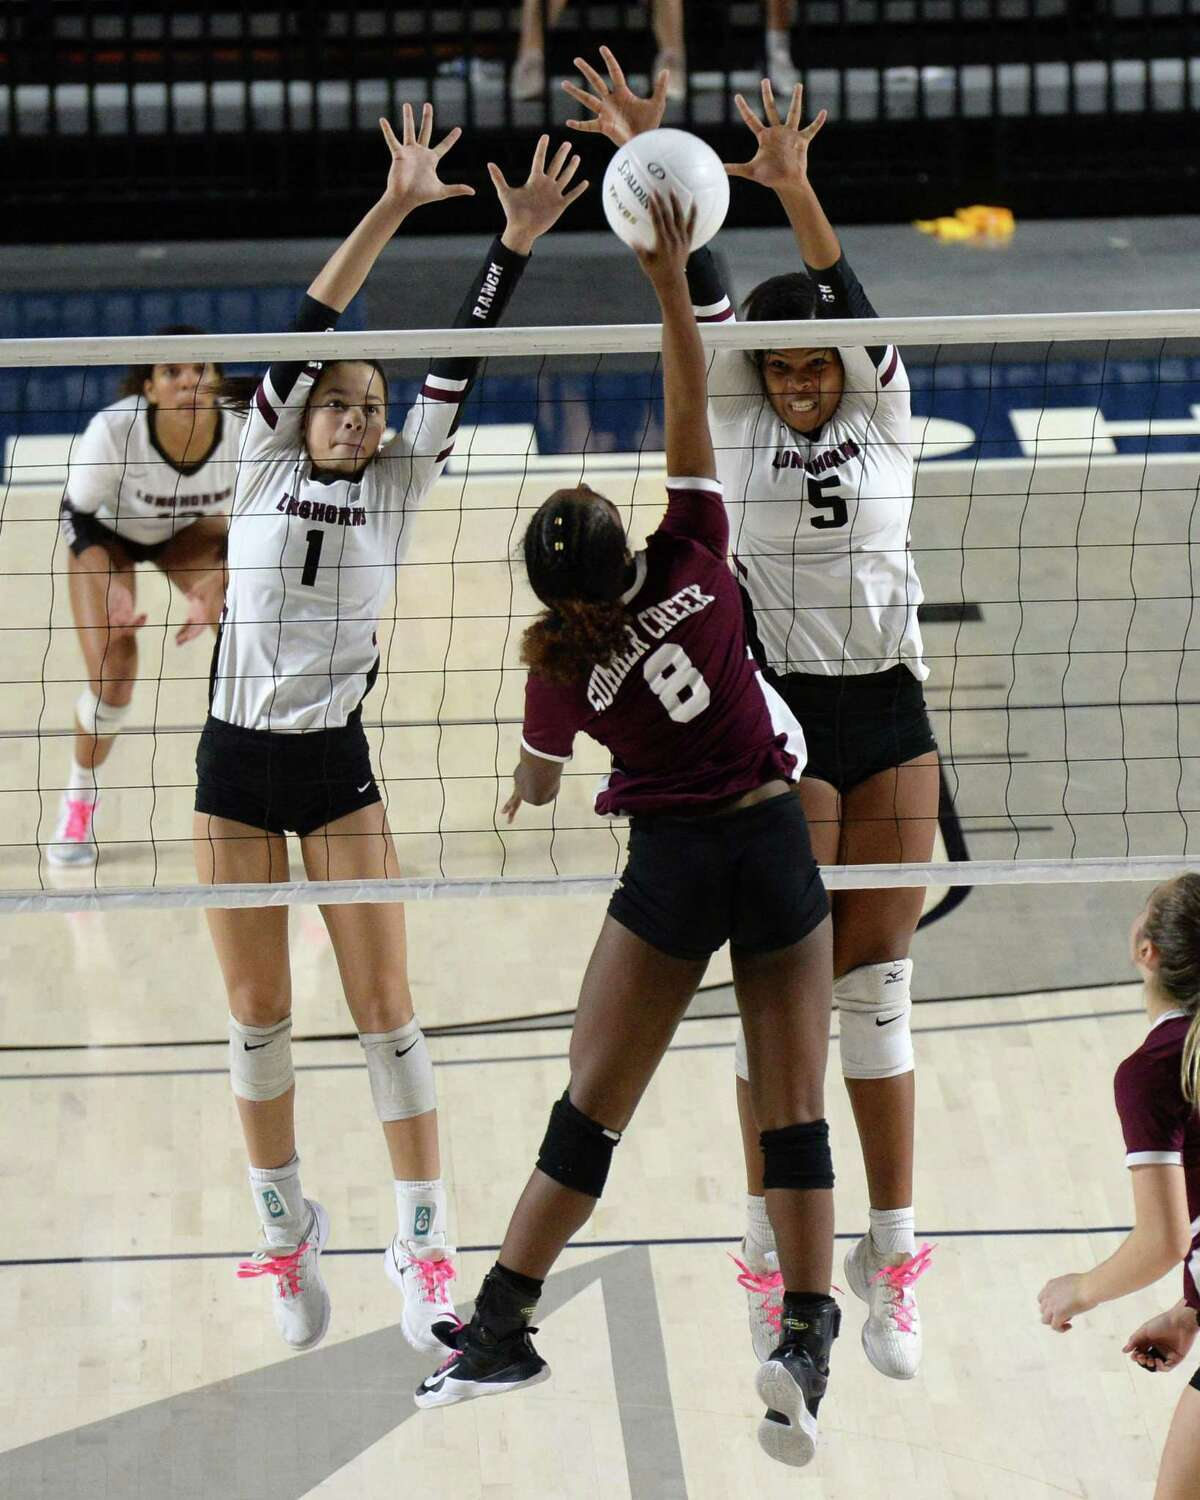 Alexandra Tennon (1) and Kennedy Prince (5) of George Ranch try to block the shot made by Amiya Matthews (8) of Summer Creek in the third set of a Class 6A Region III Area-round playoff volleyball match between the George Ranch Longhorns vs Summer Creek Bulldogs on Friday, November 2, 2018 at Delmar Fieldhouse, Houston, TX.